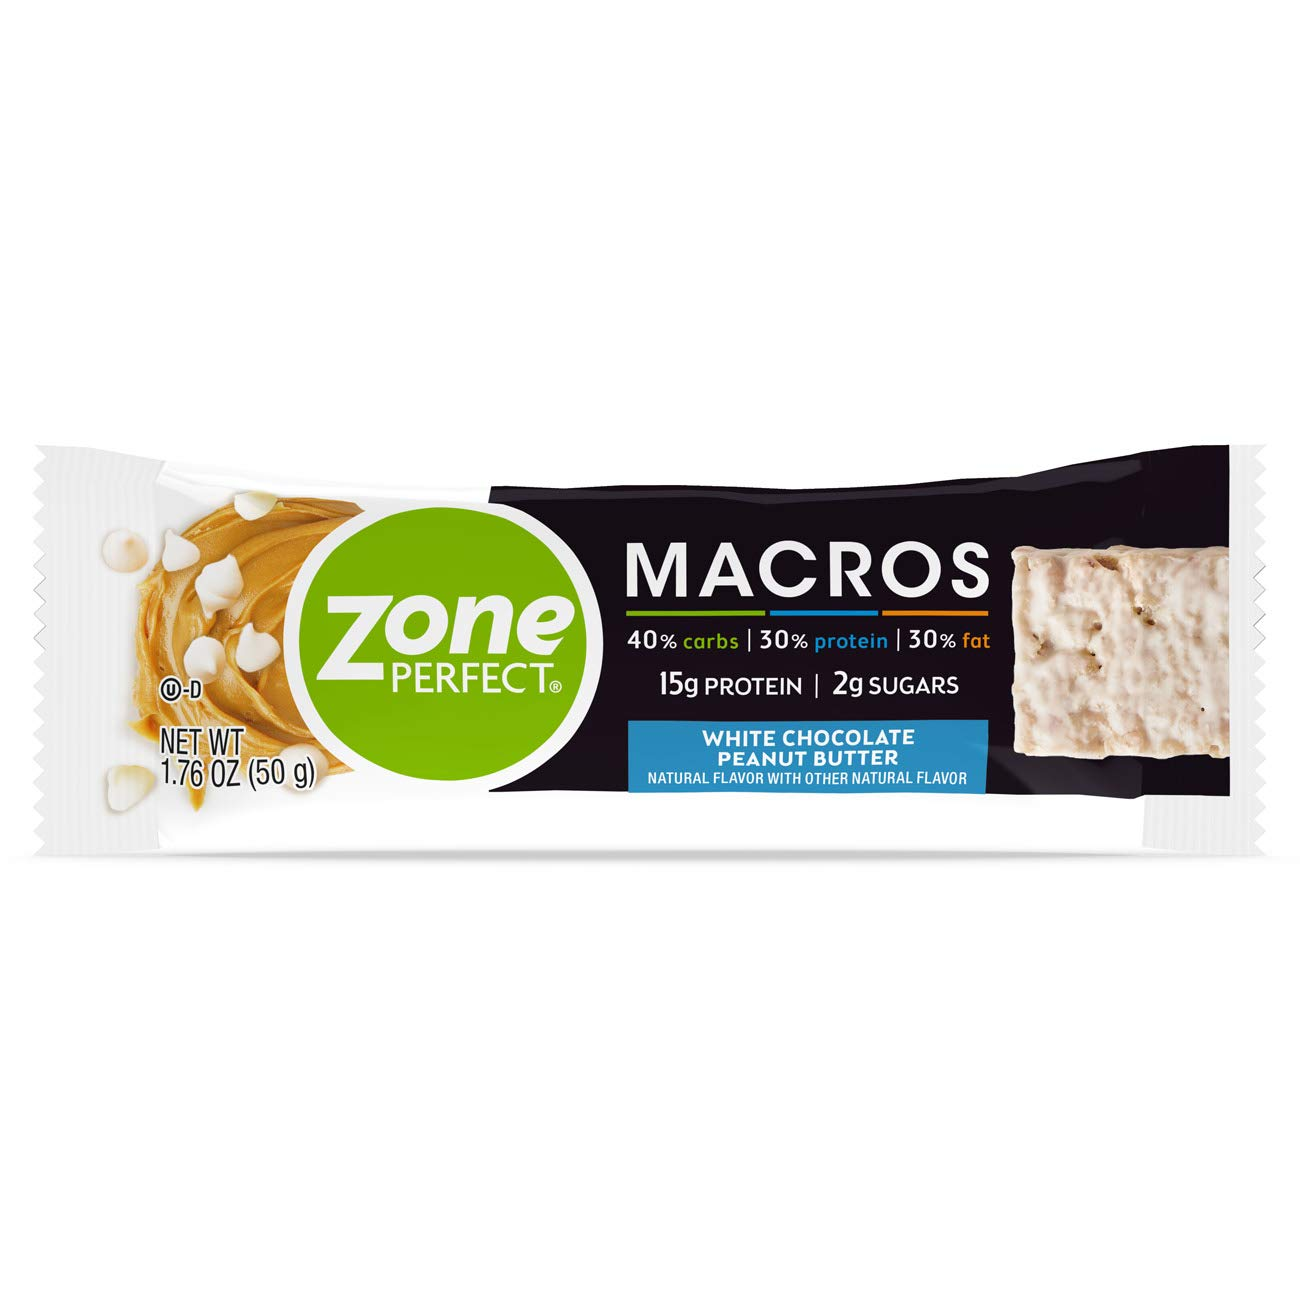 ZonePerfect Macros Protein Bars, White Chocolate Peanut Butter, 20 Count